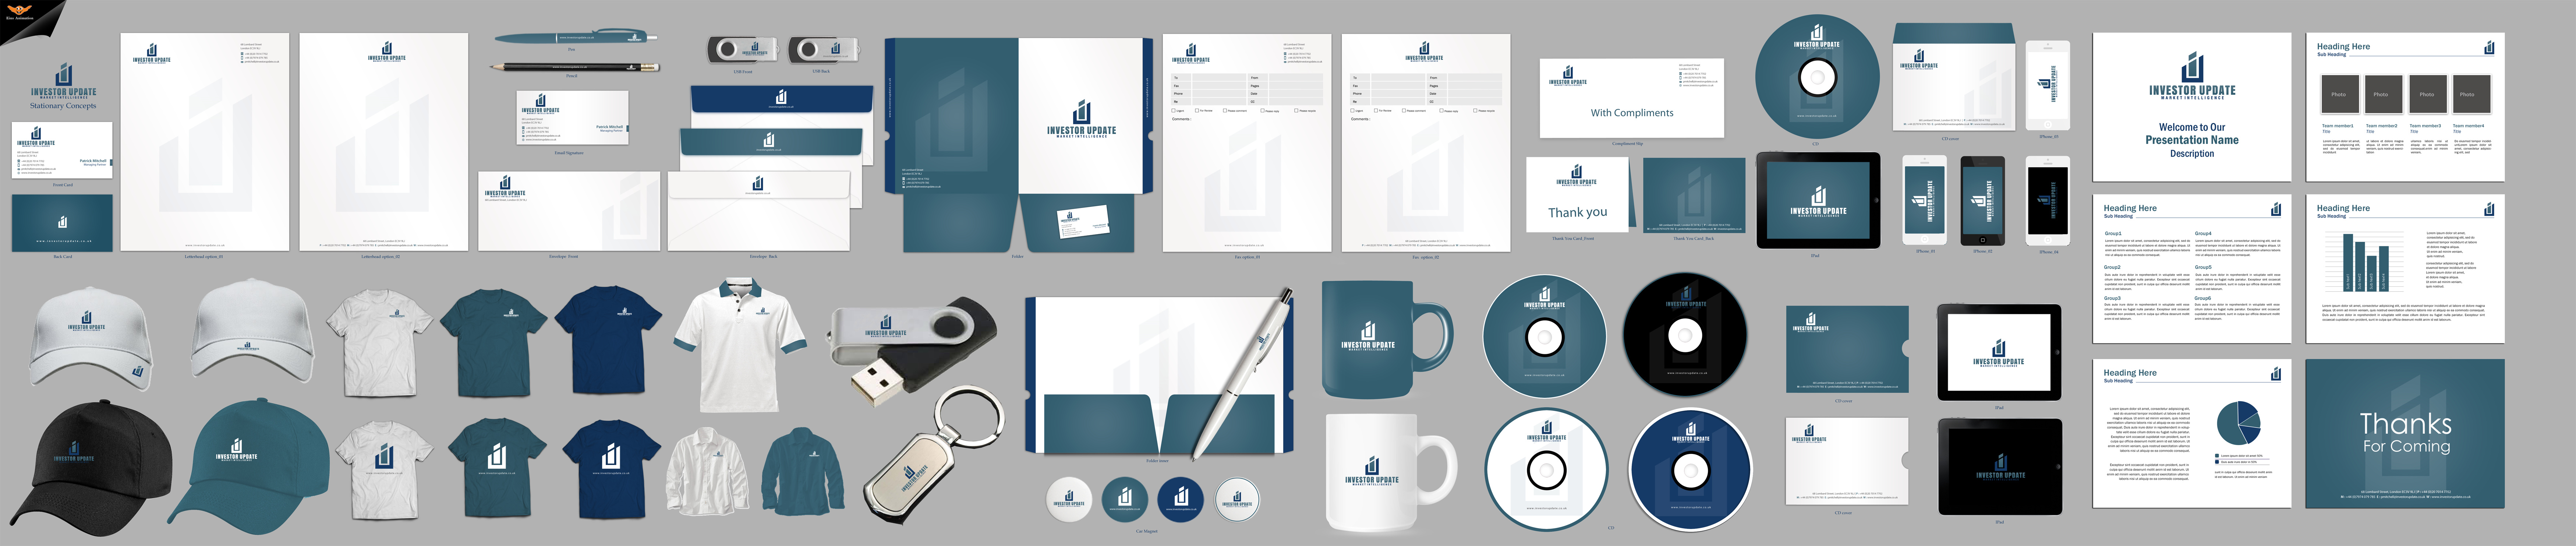 Stationery set for Financial Consultancy based in London - Financial Services